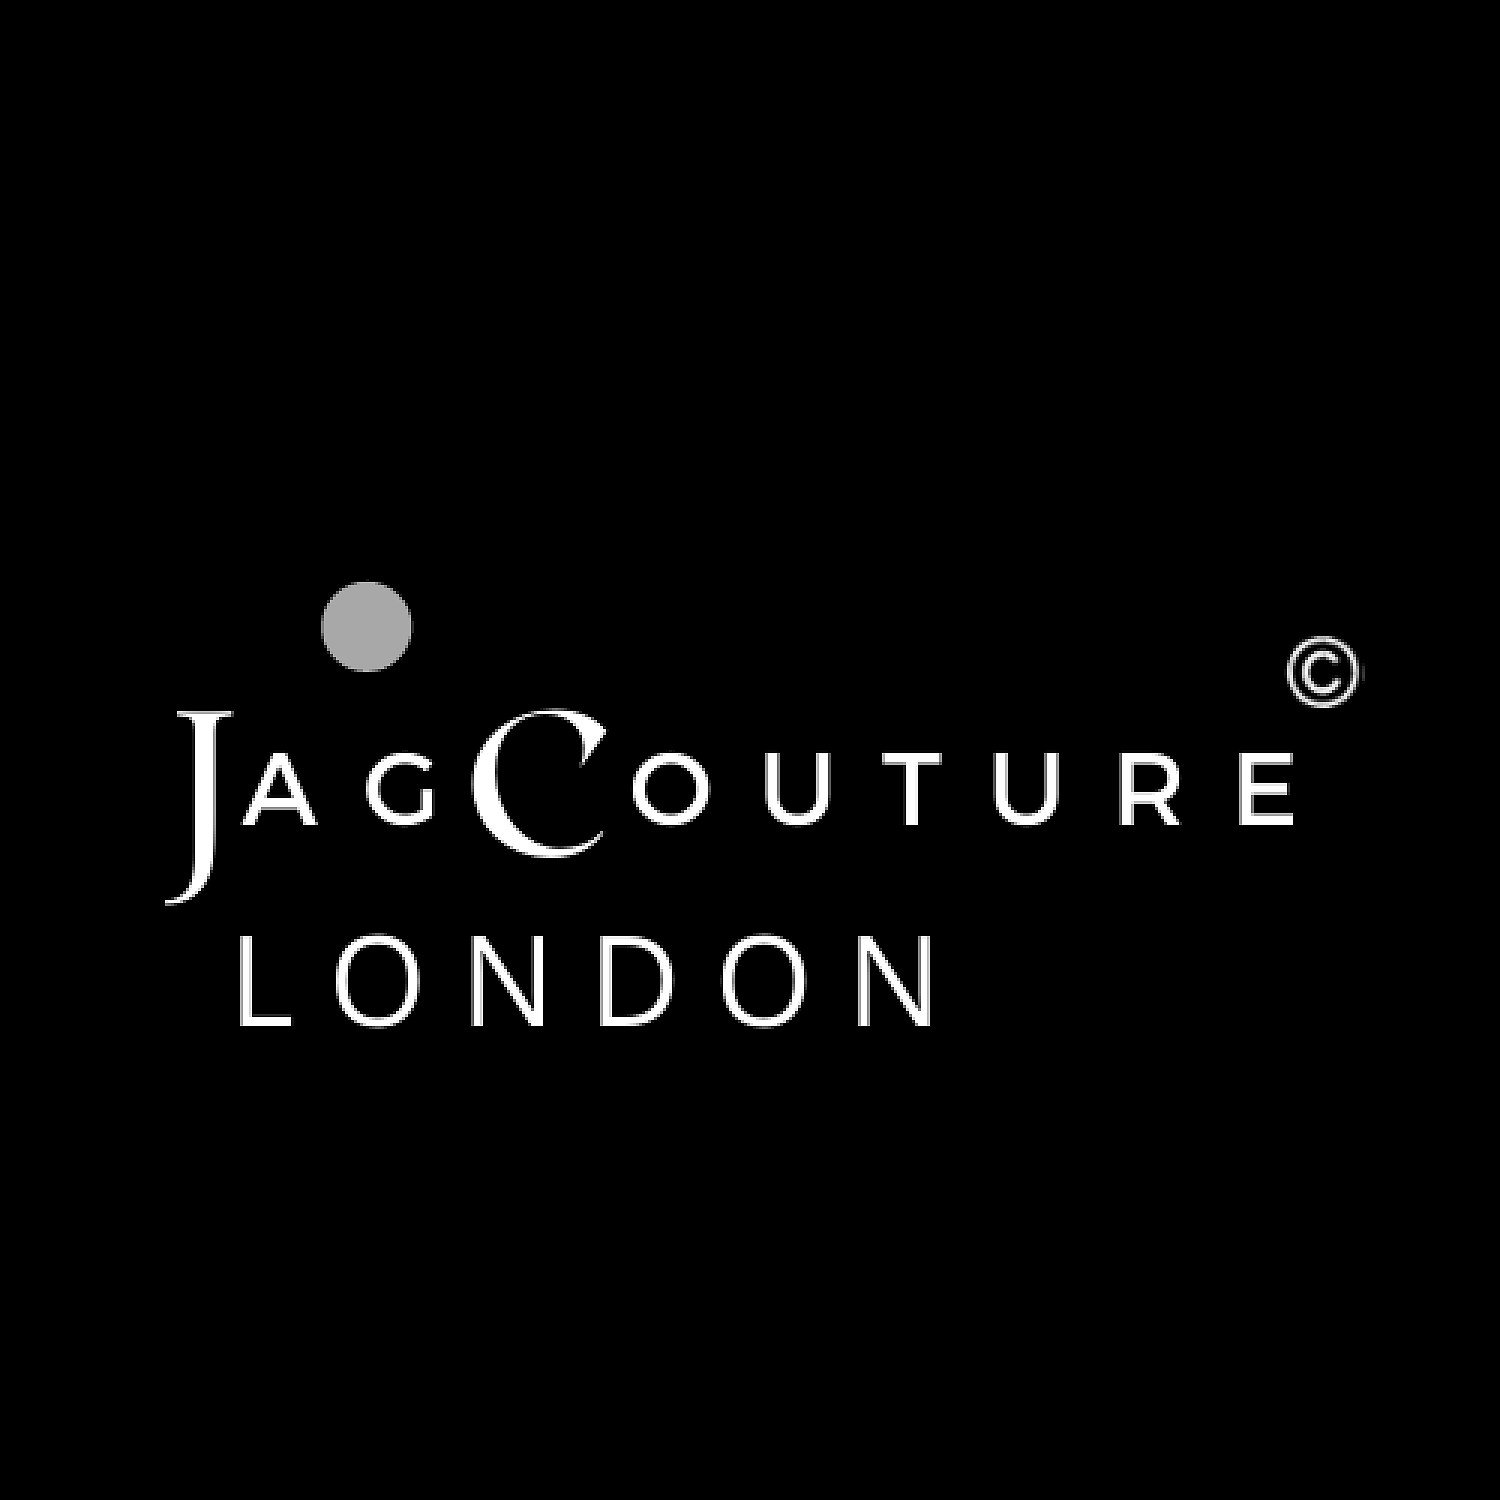 Opening Of Our New Online Luxury Store JagCouture London at:  https://www.jagcouture.co.uk